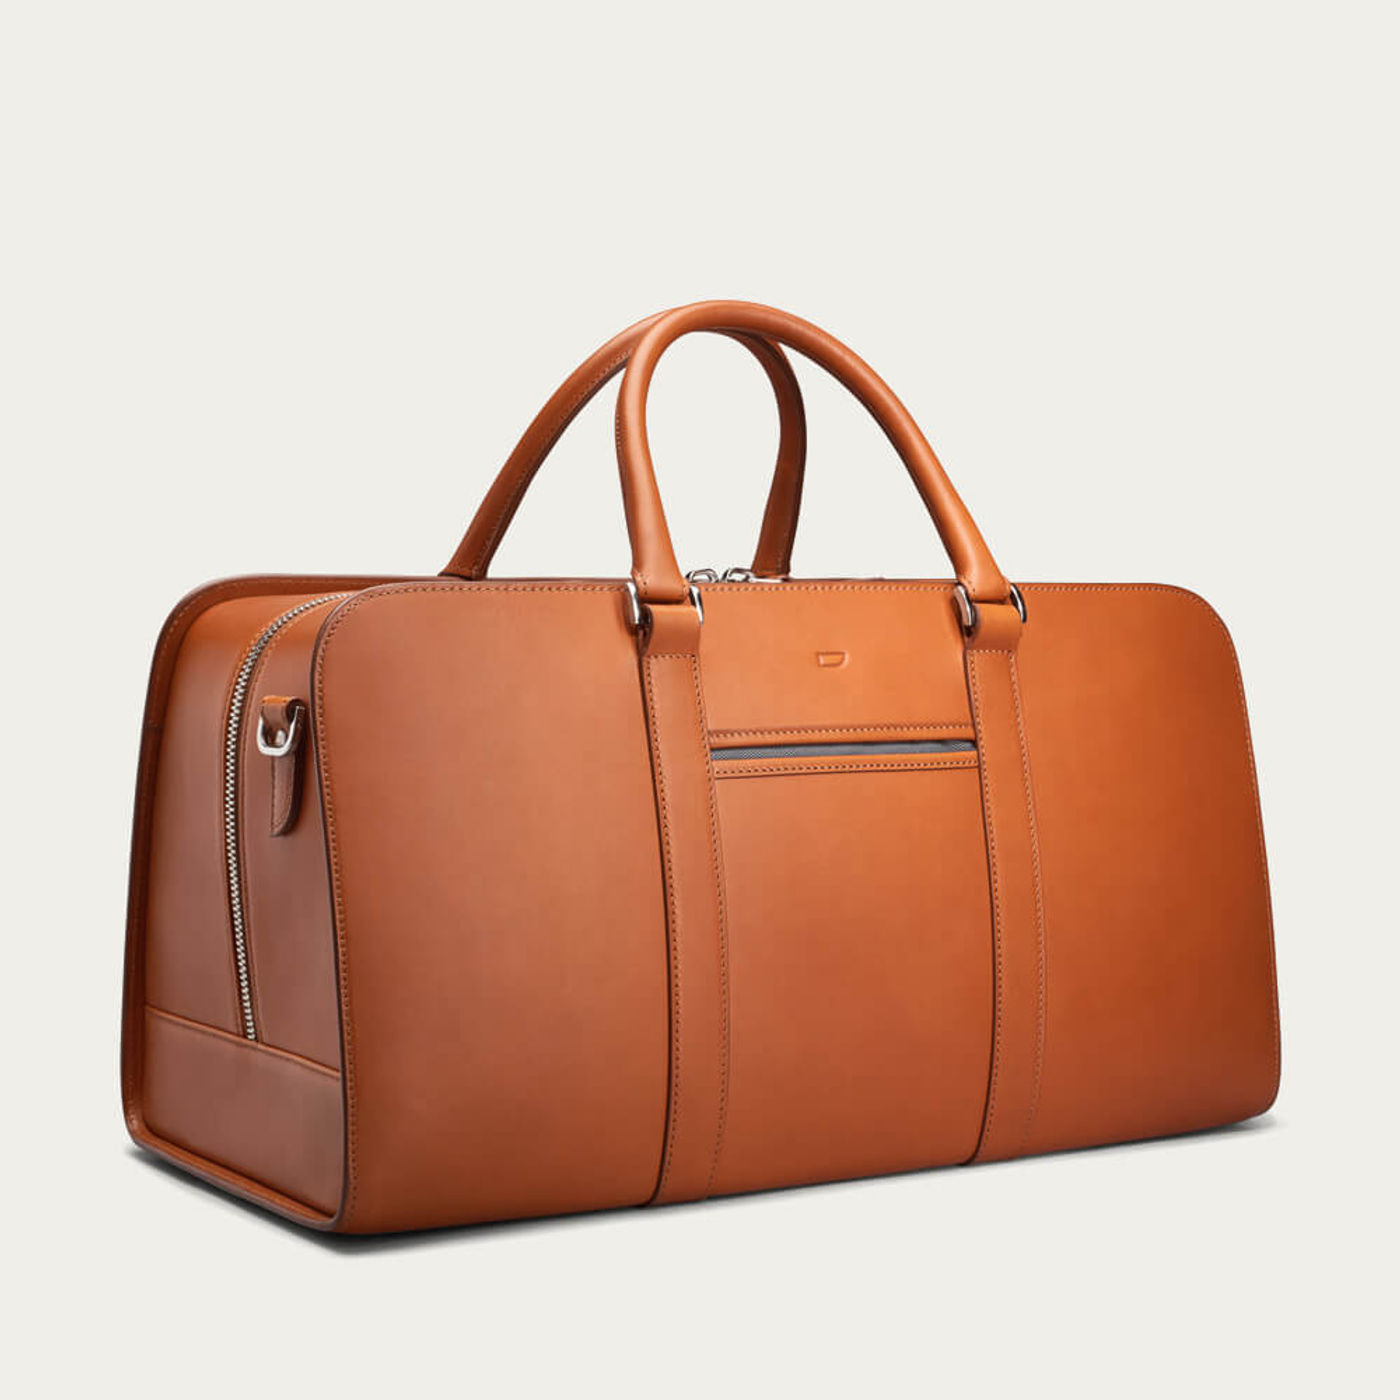 Cognac with Grey Lining Palissy Weekend Leather Bag   Bombinate